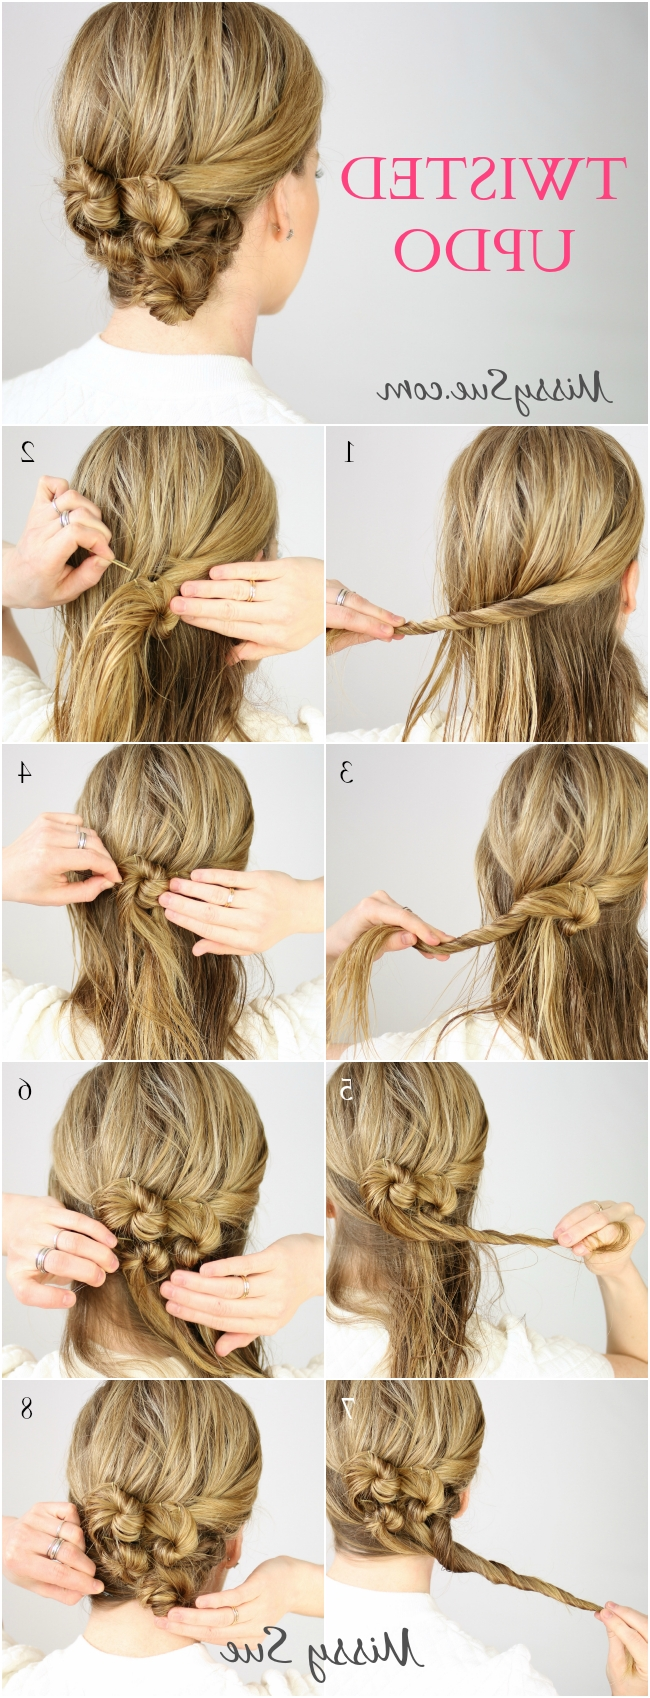 Dutch Braid And Low Bun | Wet Hair, Updo And Hair Twists Pertaining To Wet Hair Updo Hairstyles (Gallery 3 of 15)